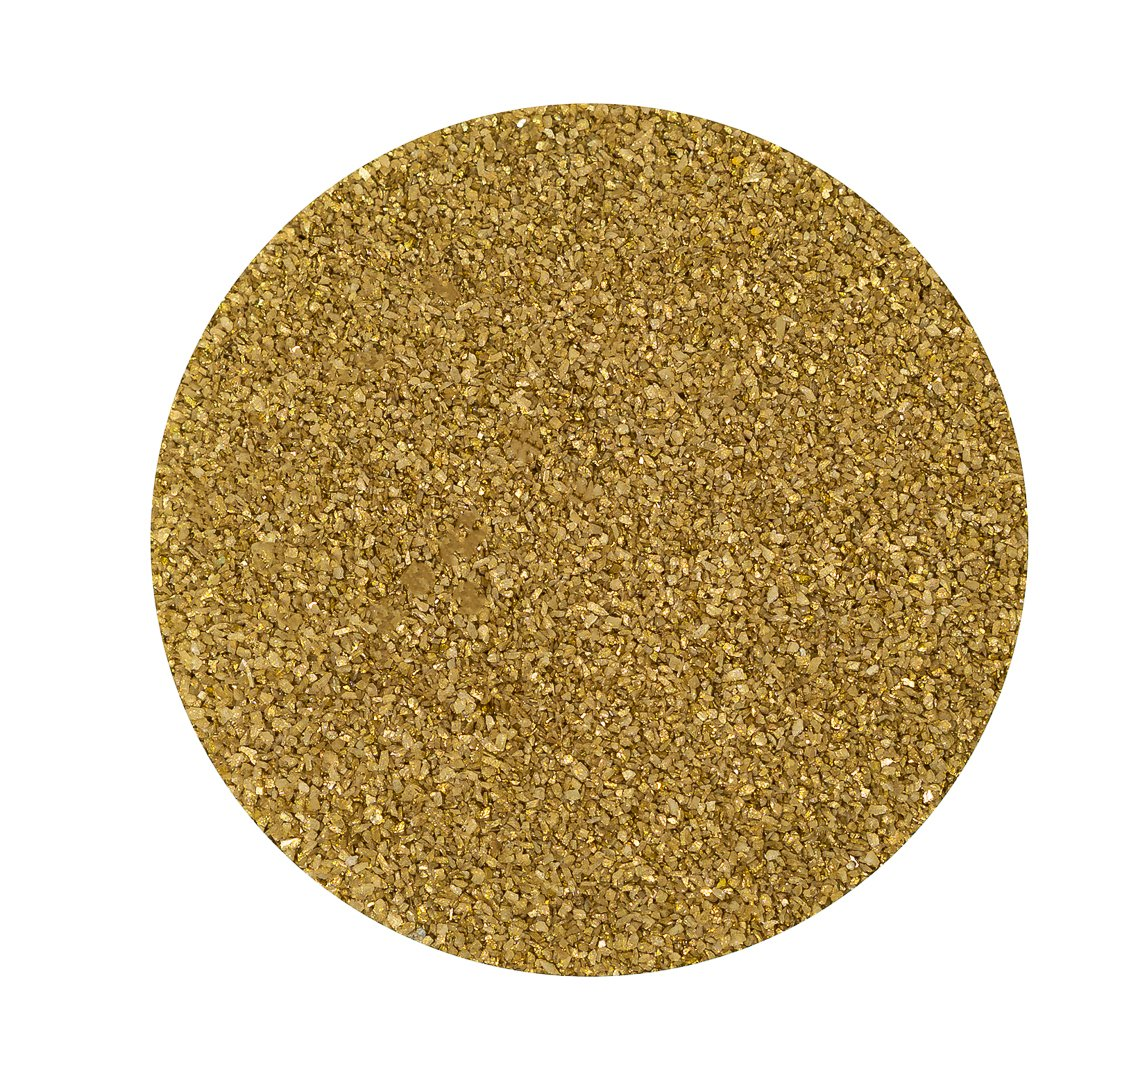 Fairy Gardens Gold Sand for Wedding Sand Ceremonies Terrariums Fine Texture 1 Pound | Plus Free Nautical Ebook by Joseph Rains Nautical Crush Trading Colored Sand for Crafts or Any Craft |